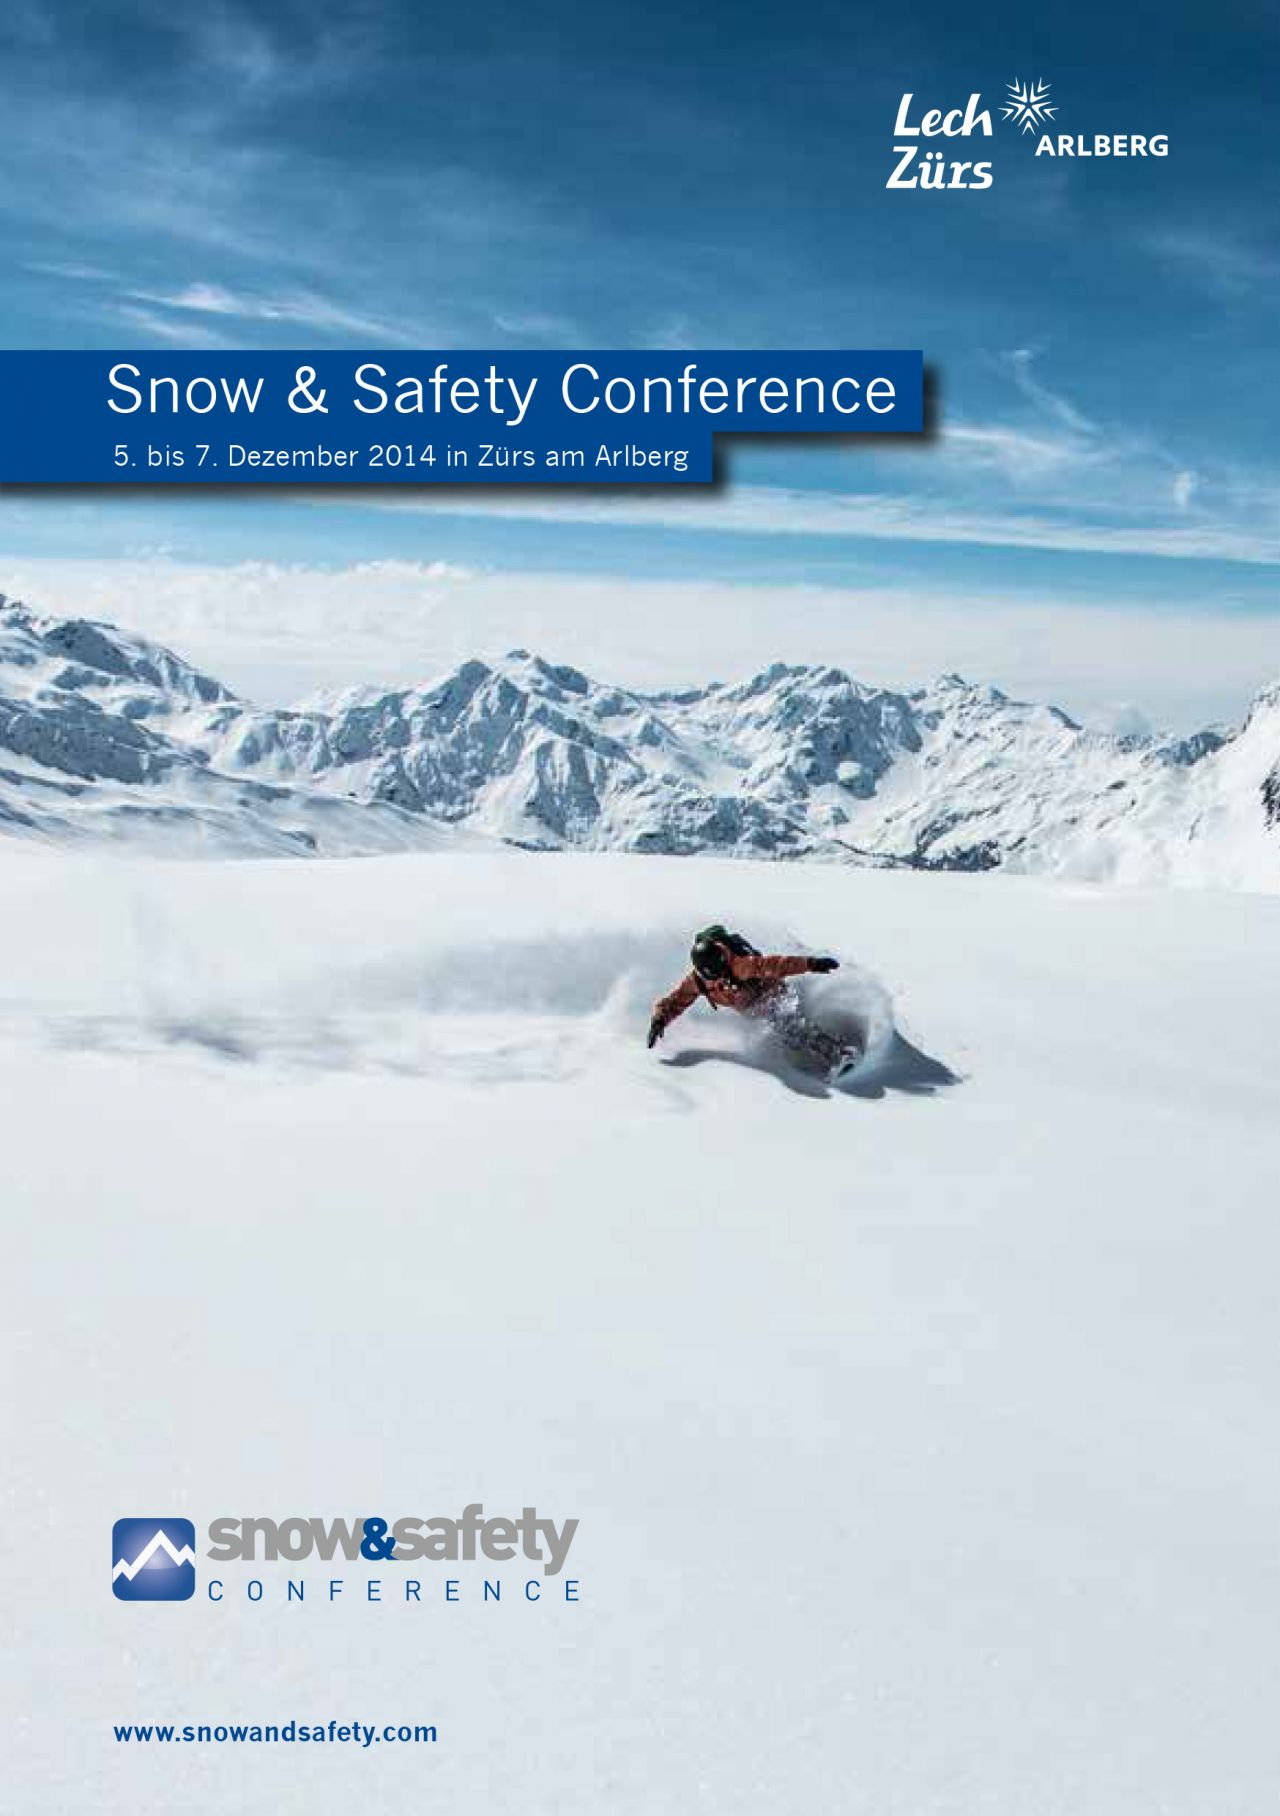 'Snow & Safety Conference - Zürs am Arlberg'